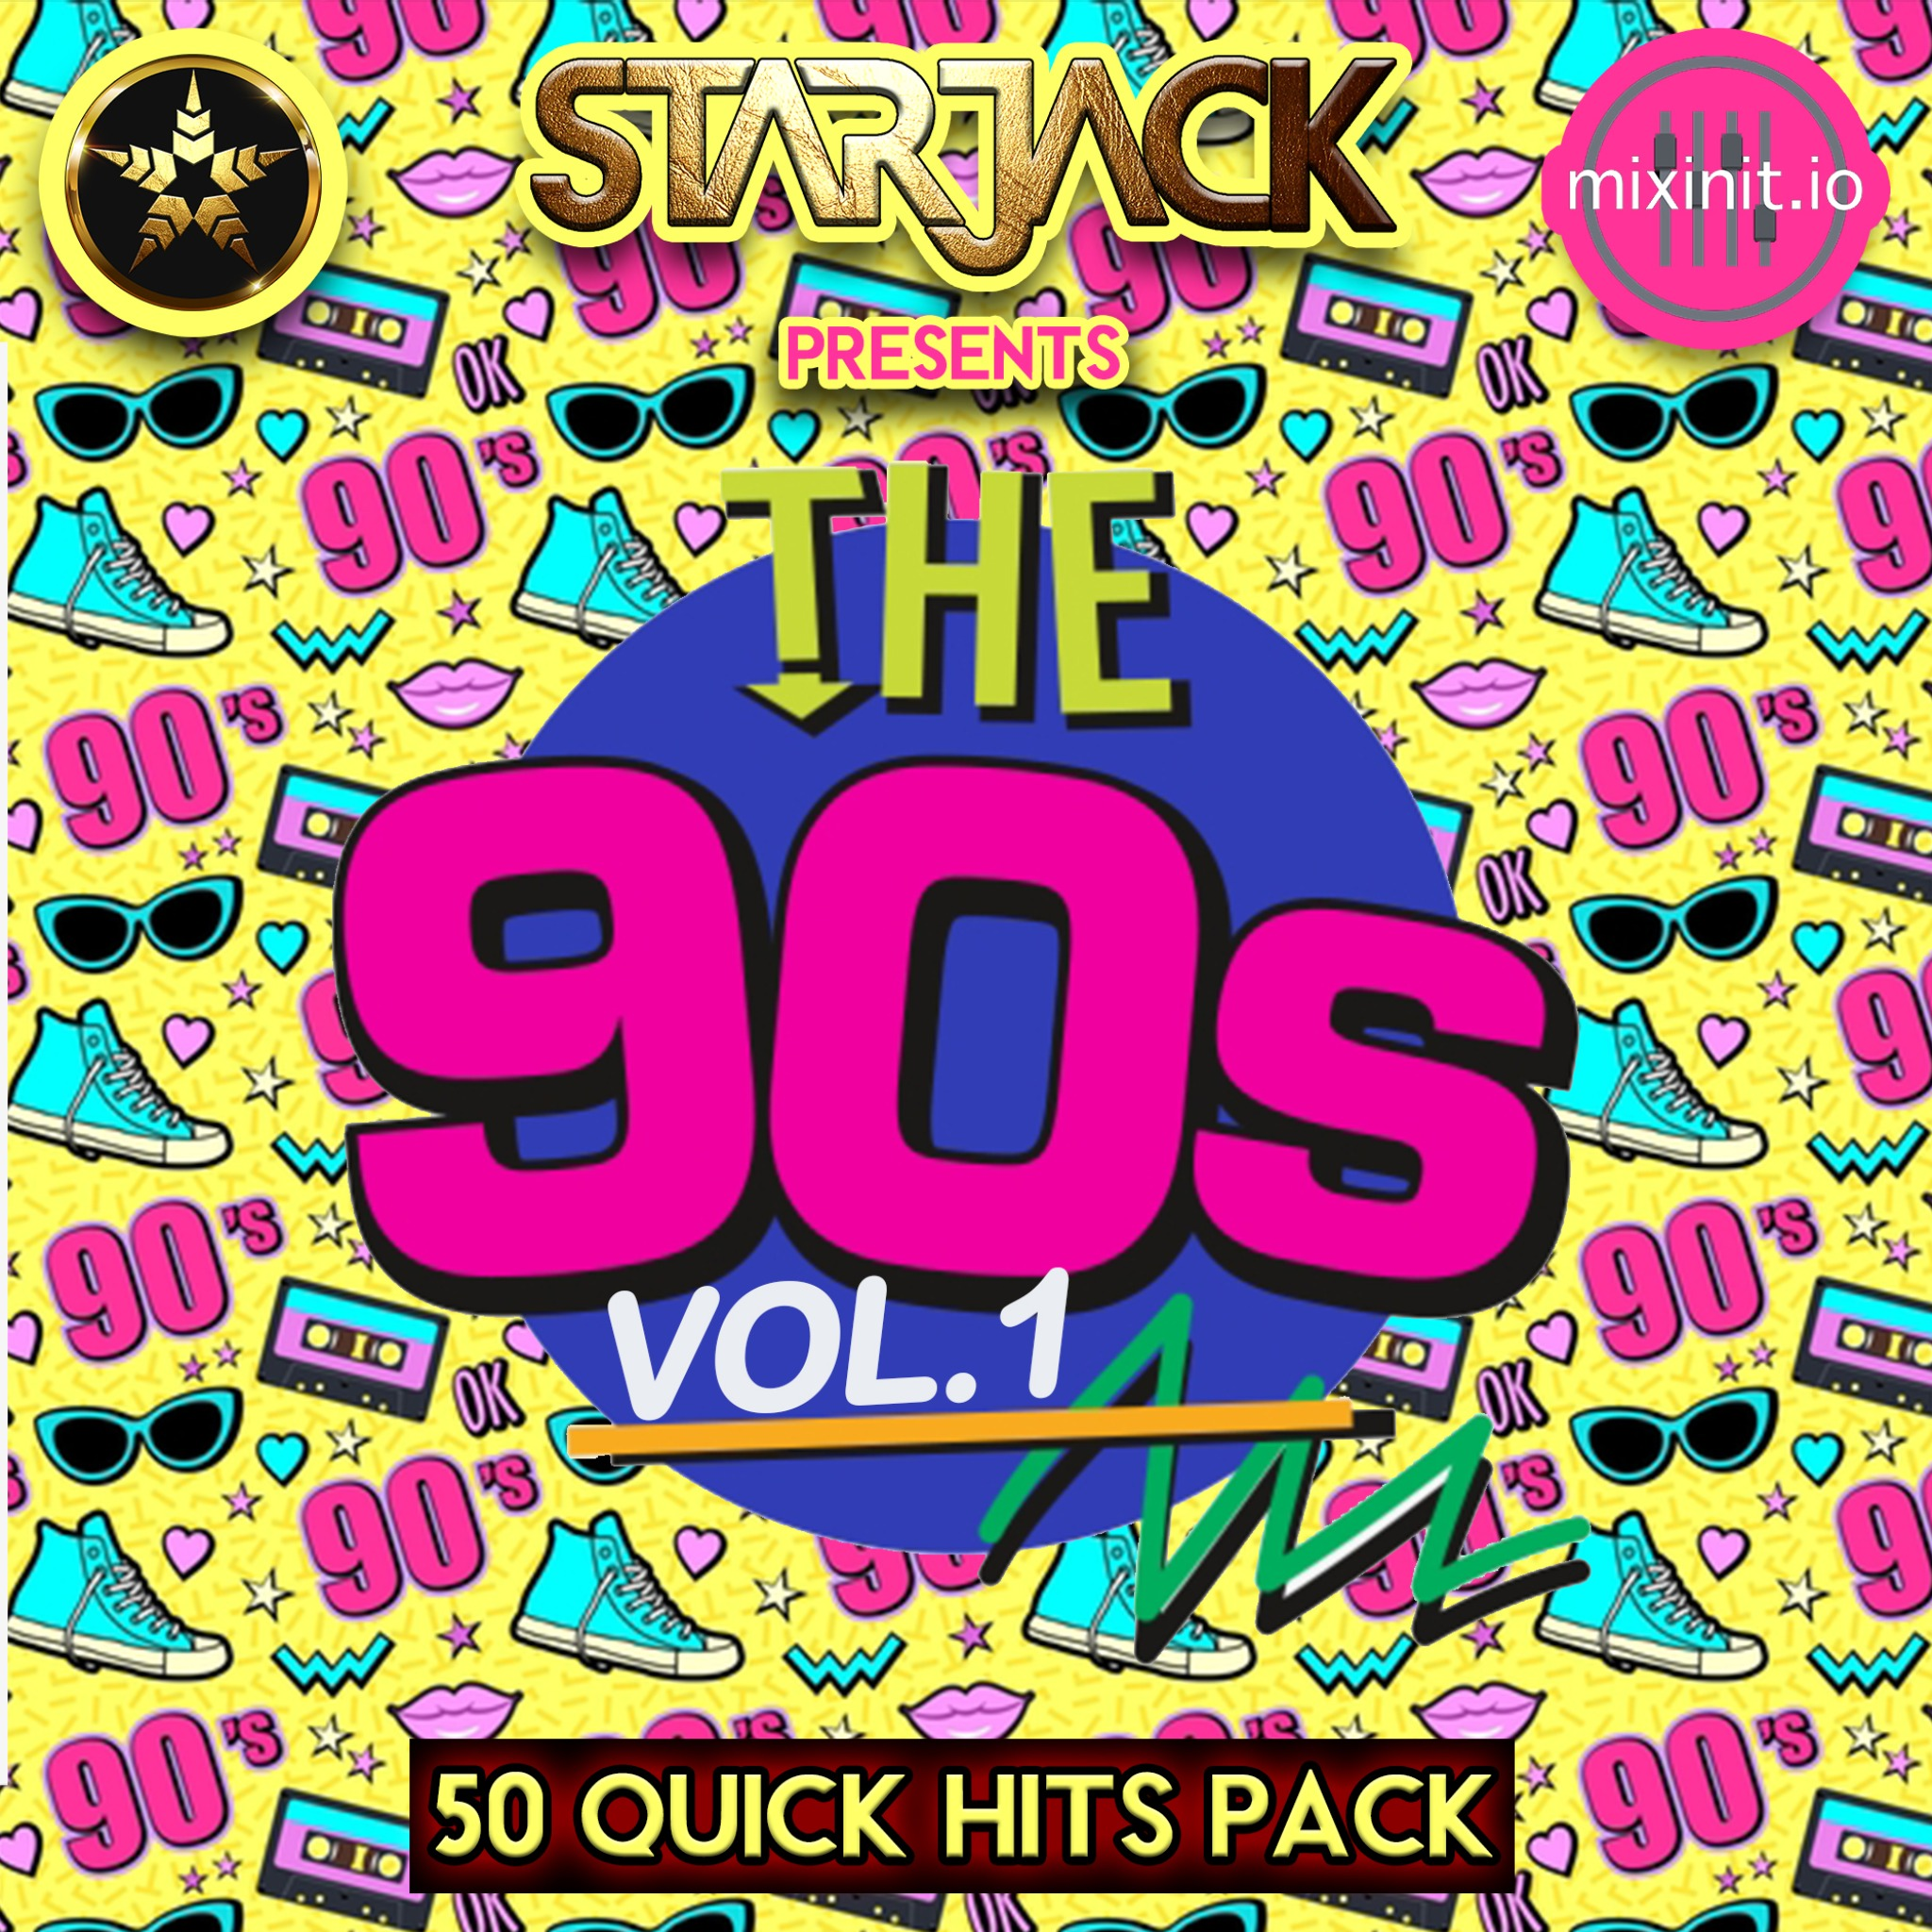 Starjack - The 90's Vol. 1 (Quick Hit / Acap Out) 50 Pack